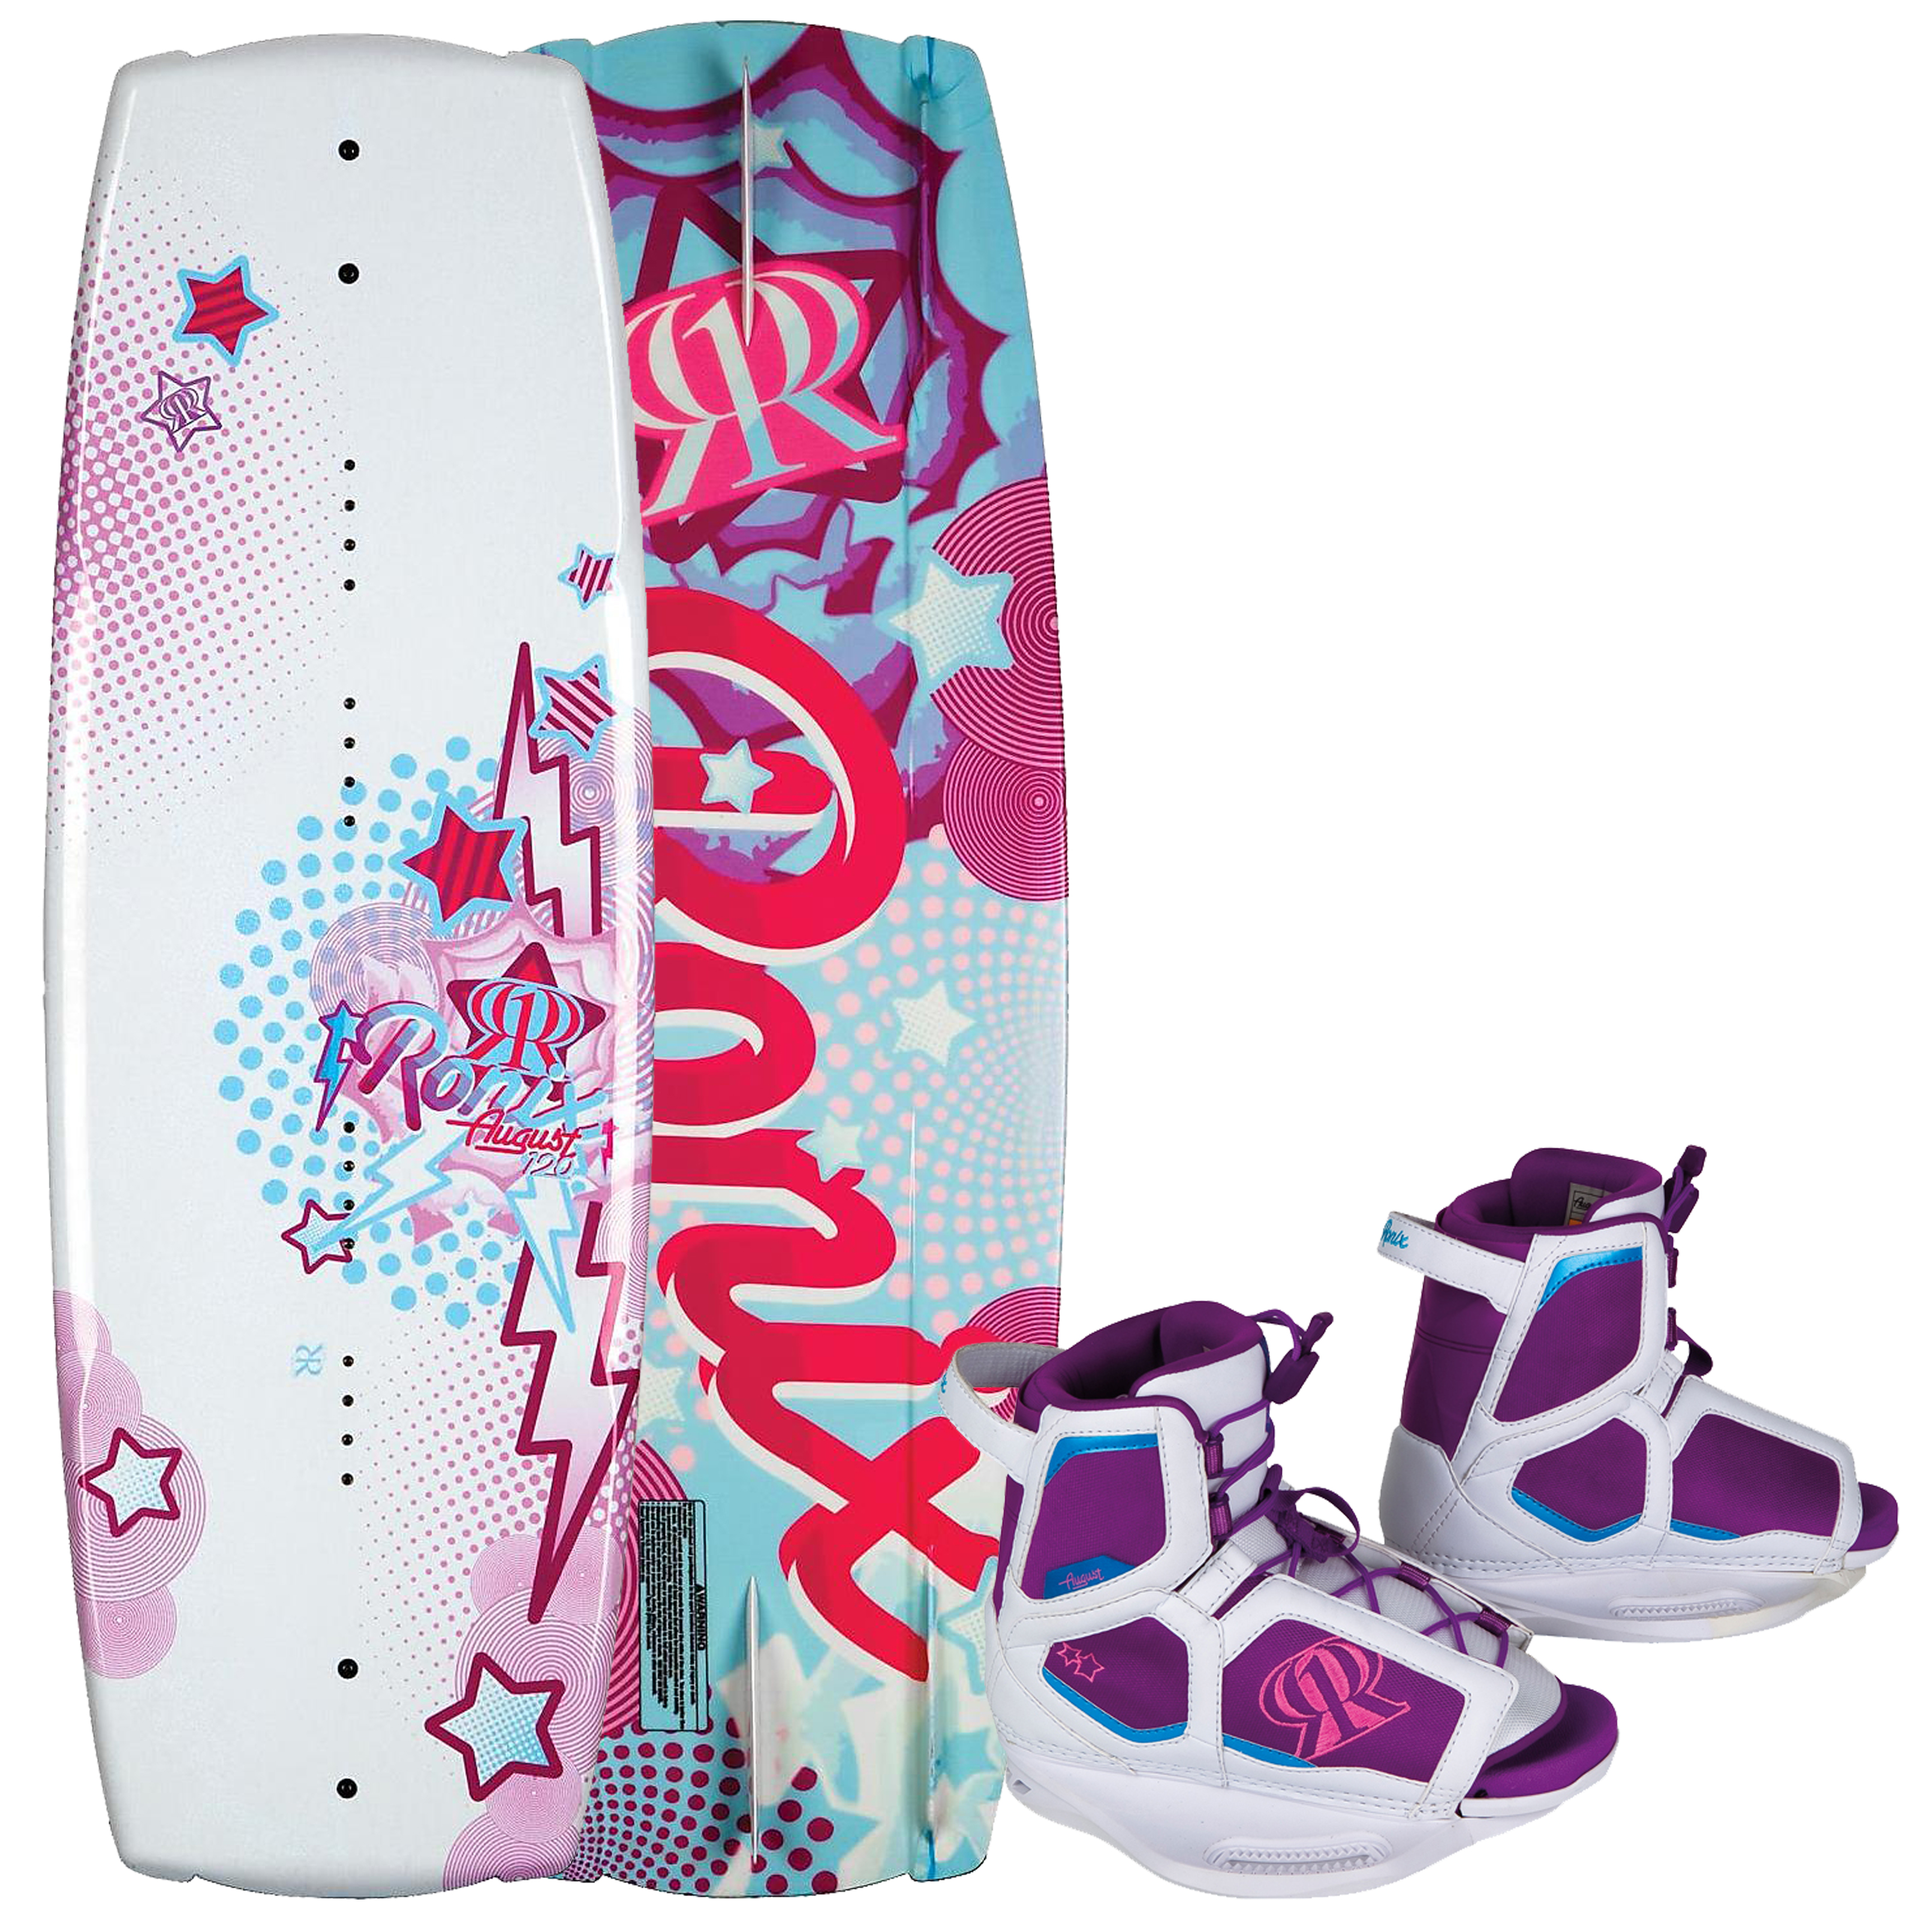 AUGUST 120 W/ AUGUST EU 33-37/US 2-6 PACKAGE RONIX 2012